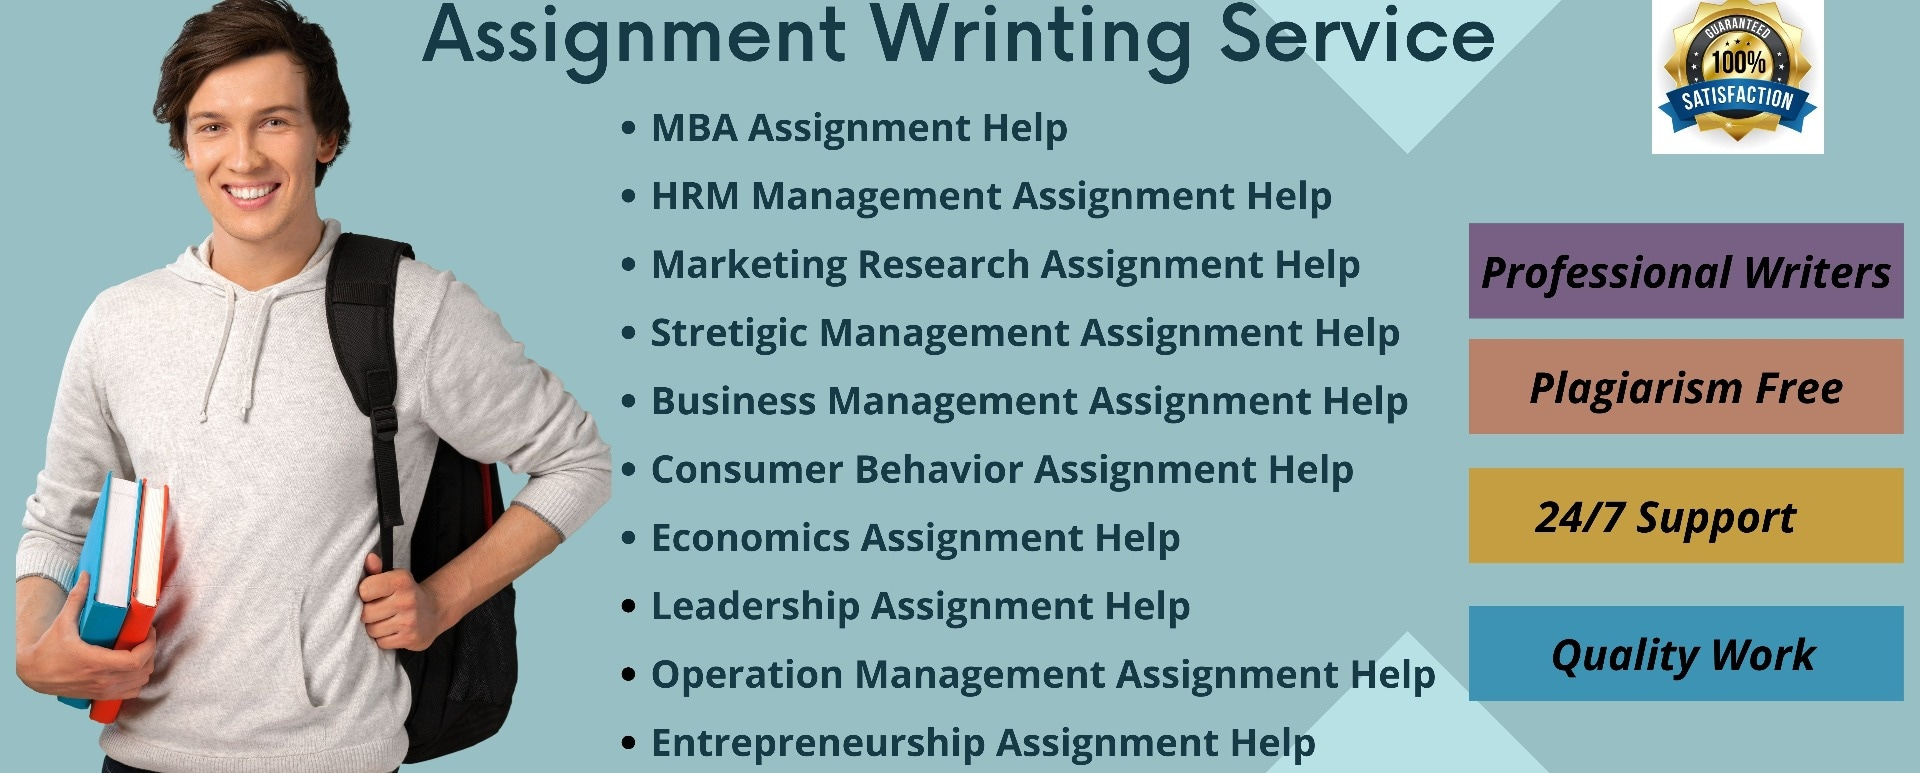 Vidhya Inovative Technology - Thesis Writing and Editing Services in Tower Square, Indore